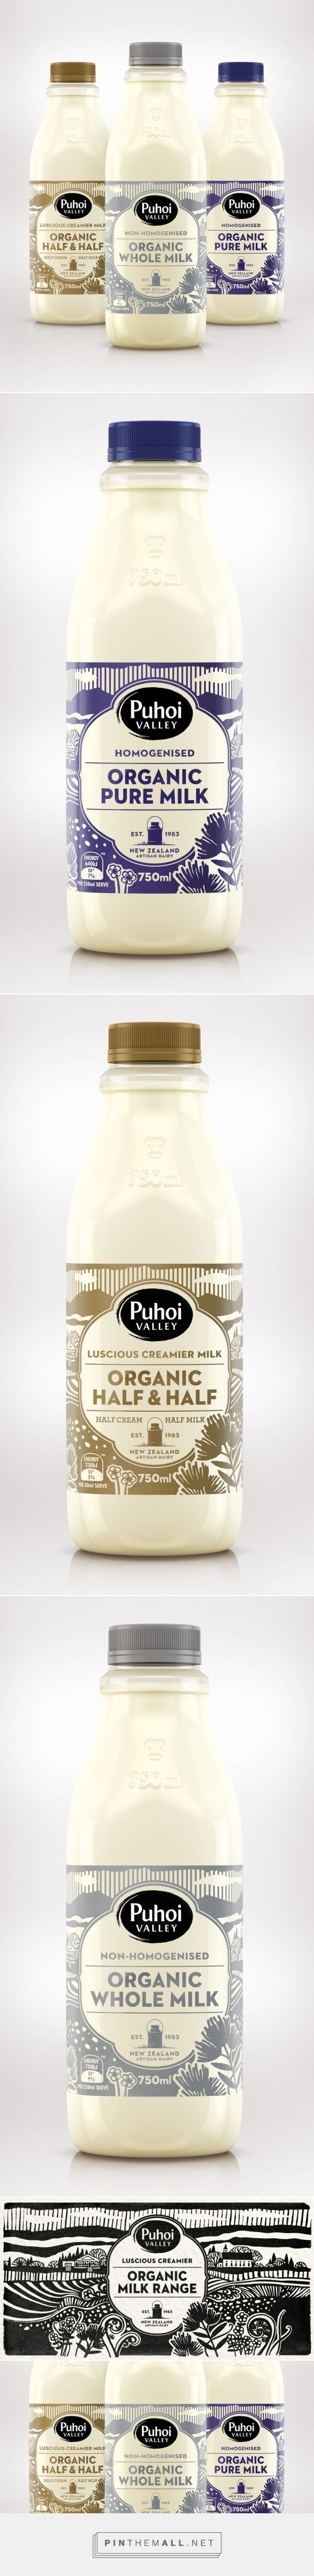 Puhoi Organic Milk by Unified Brands PD